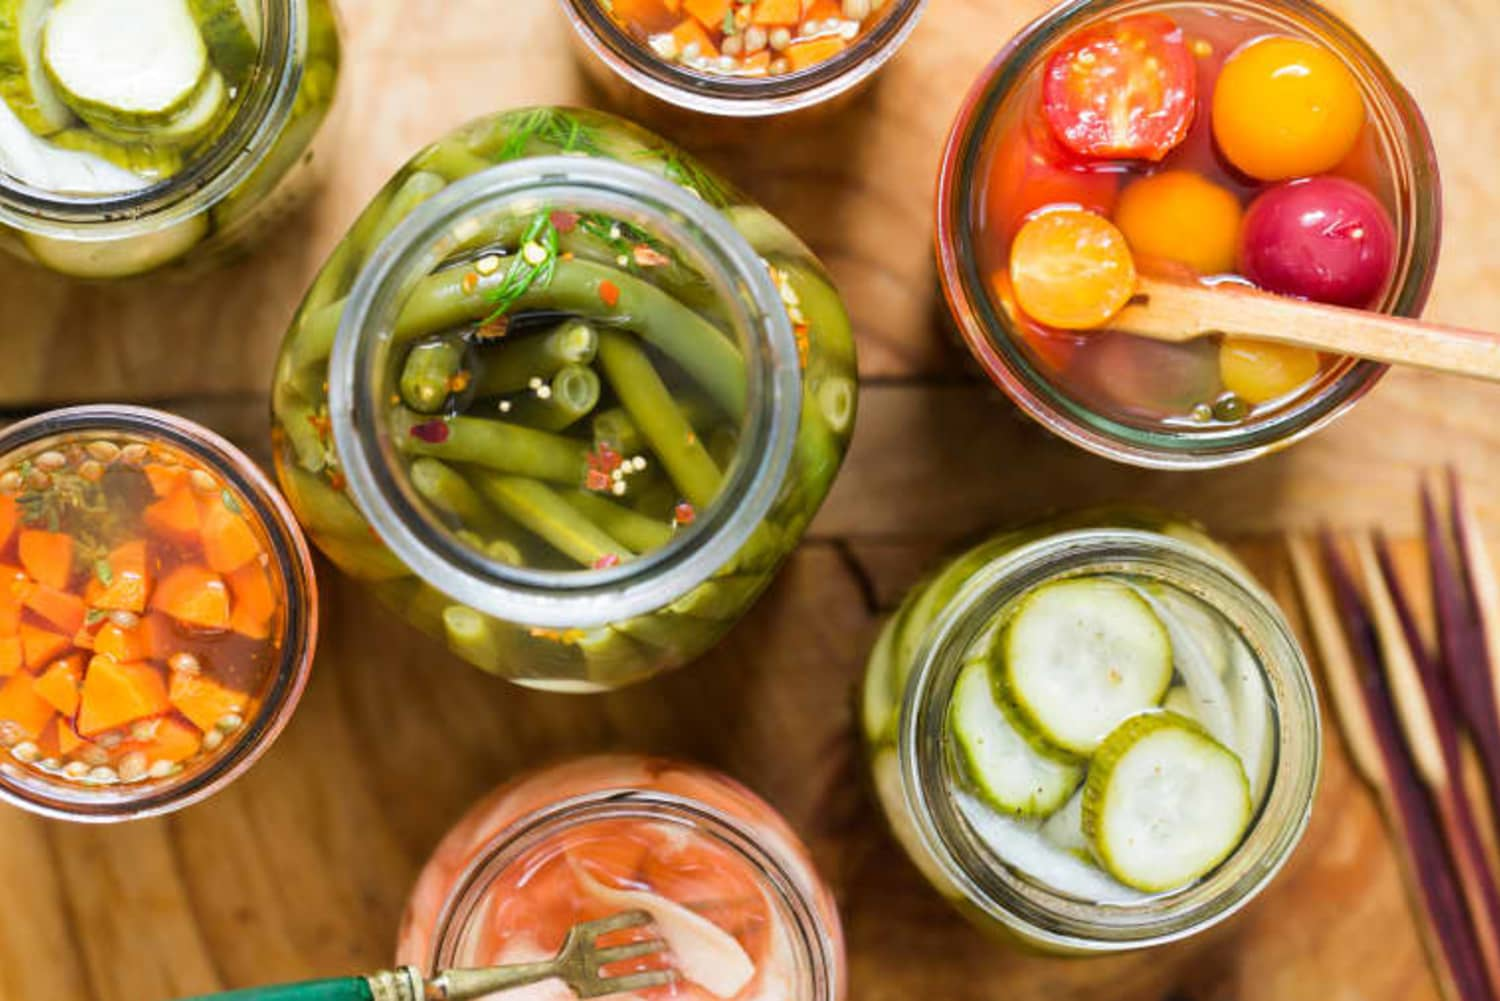 10 Surprising Things You Didn't Know You Could Pickle